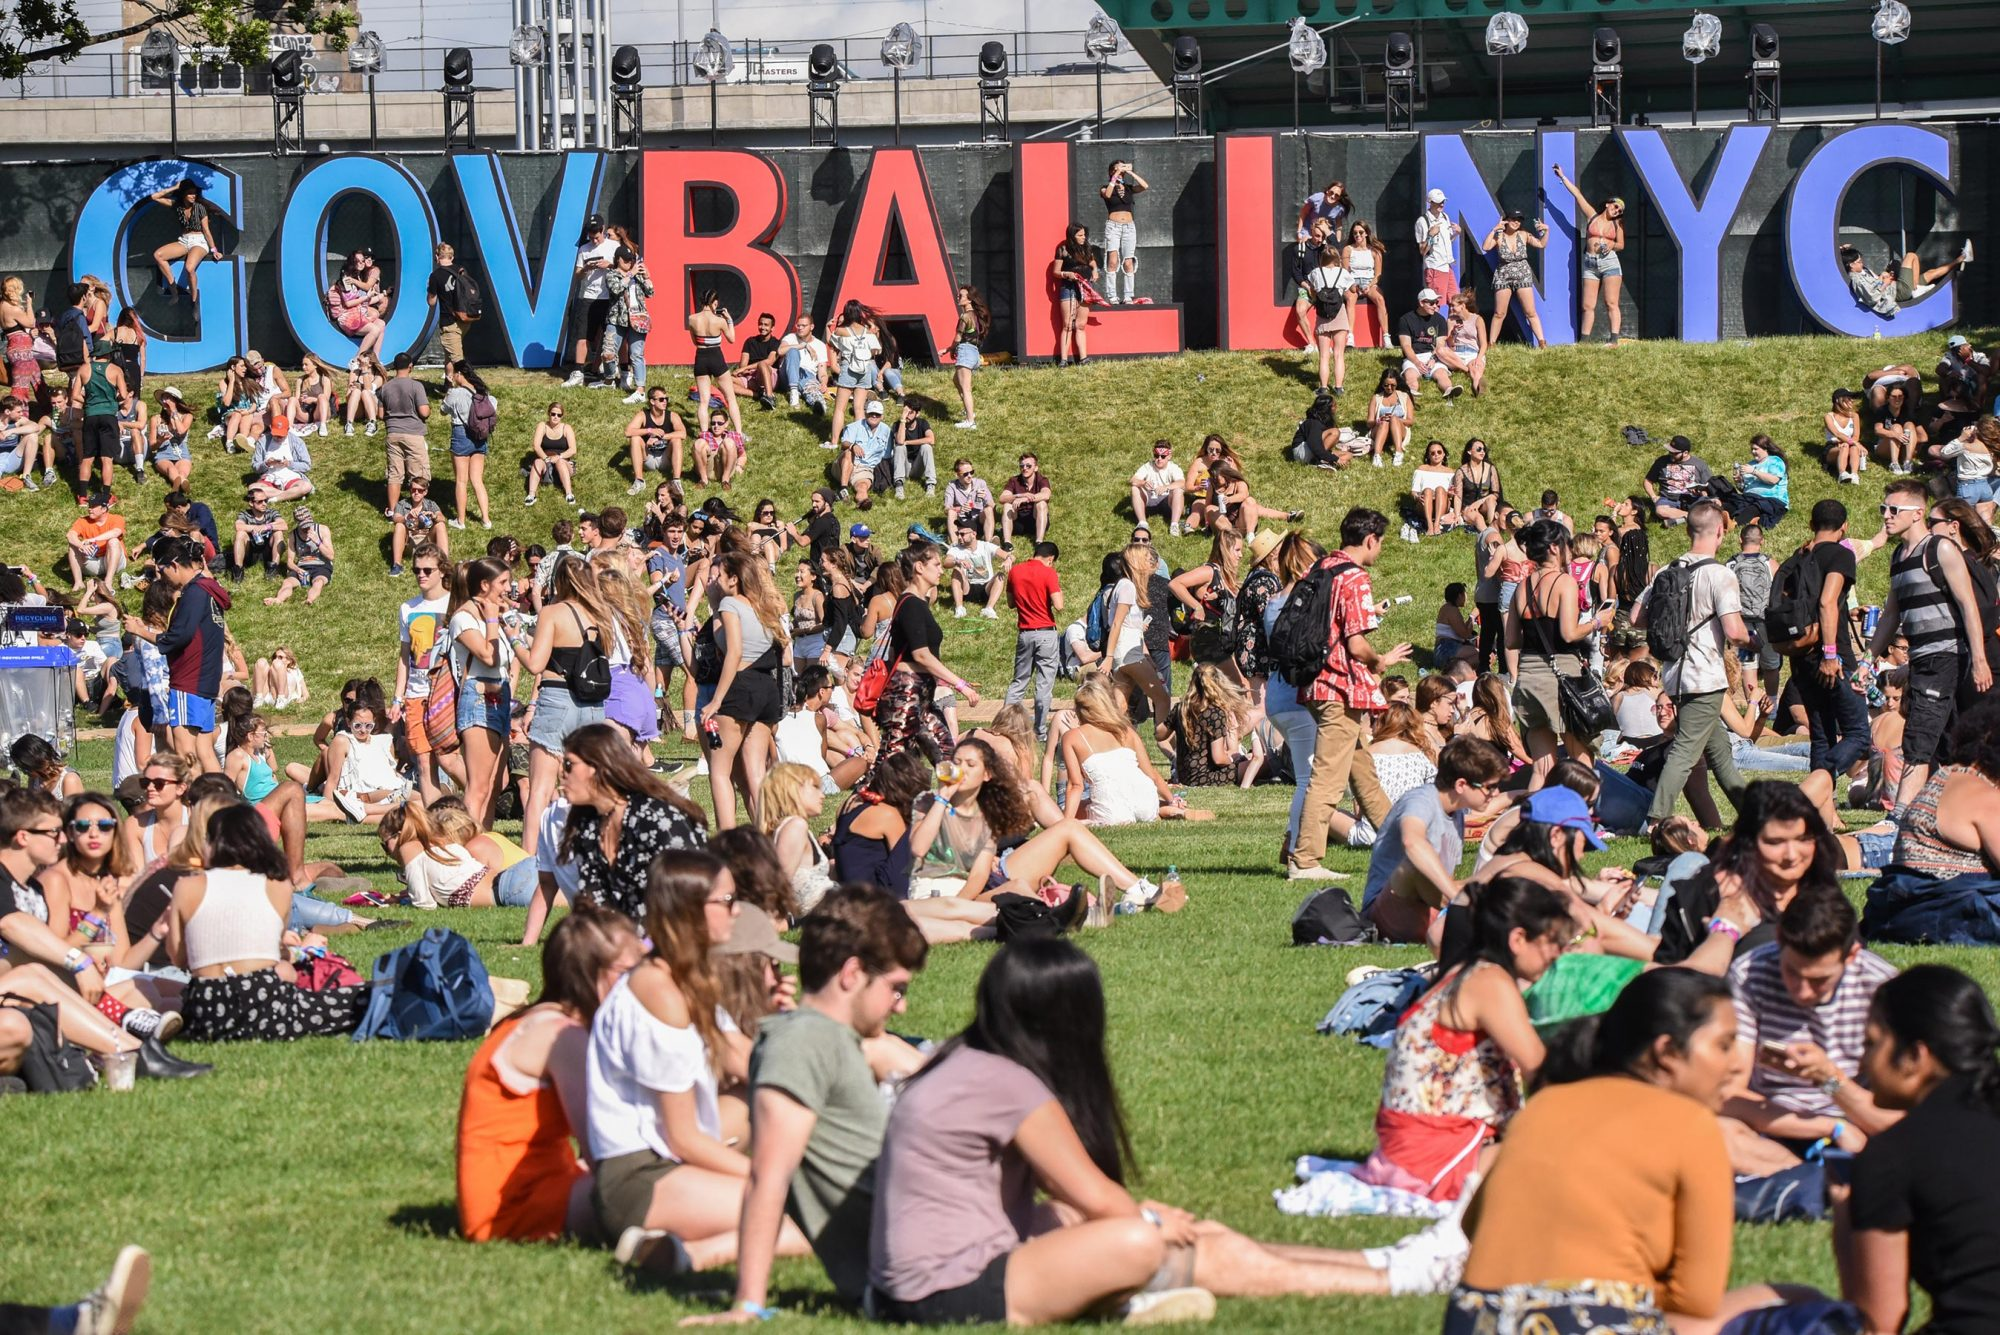 2017 Governors Ball Music Festival - Day 1